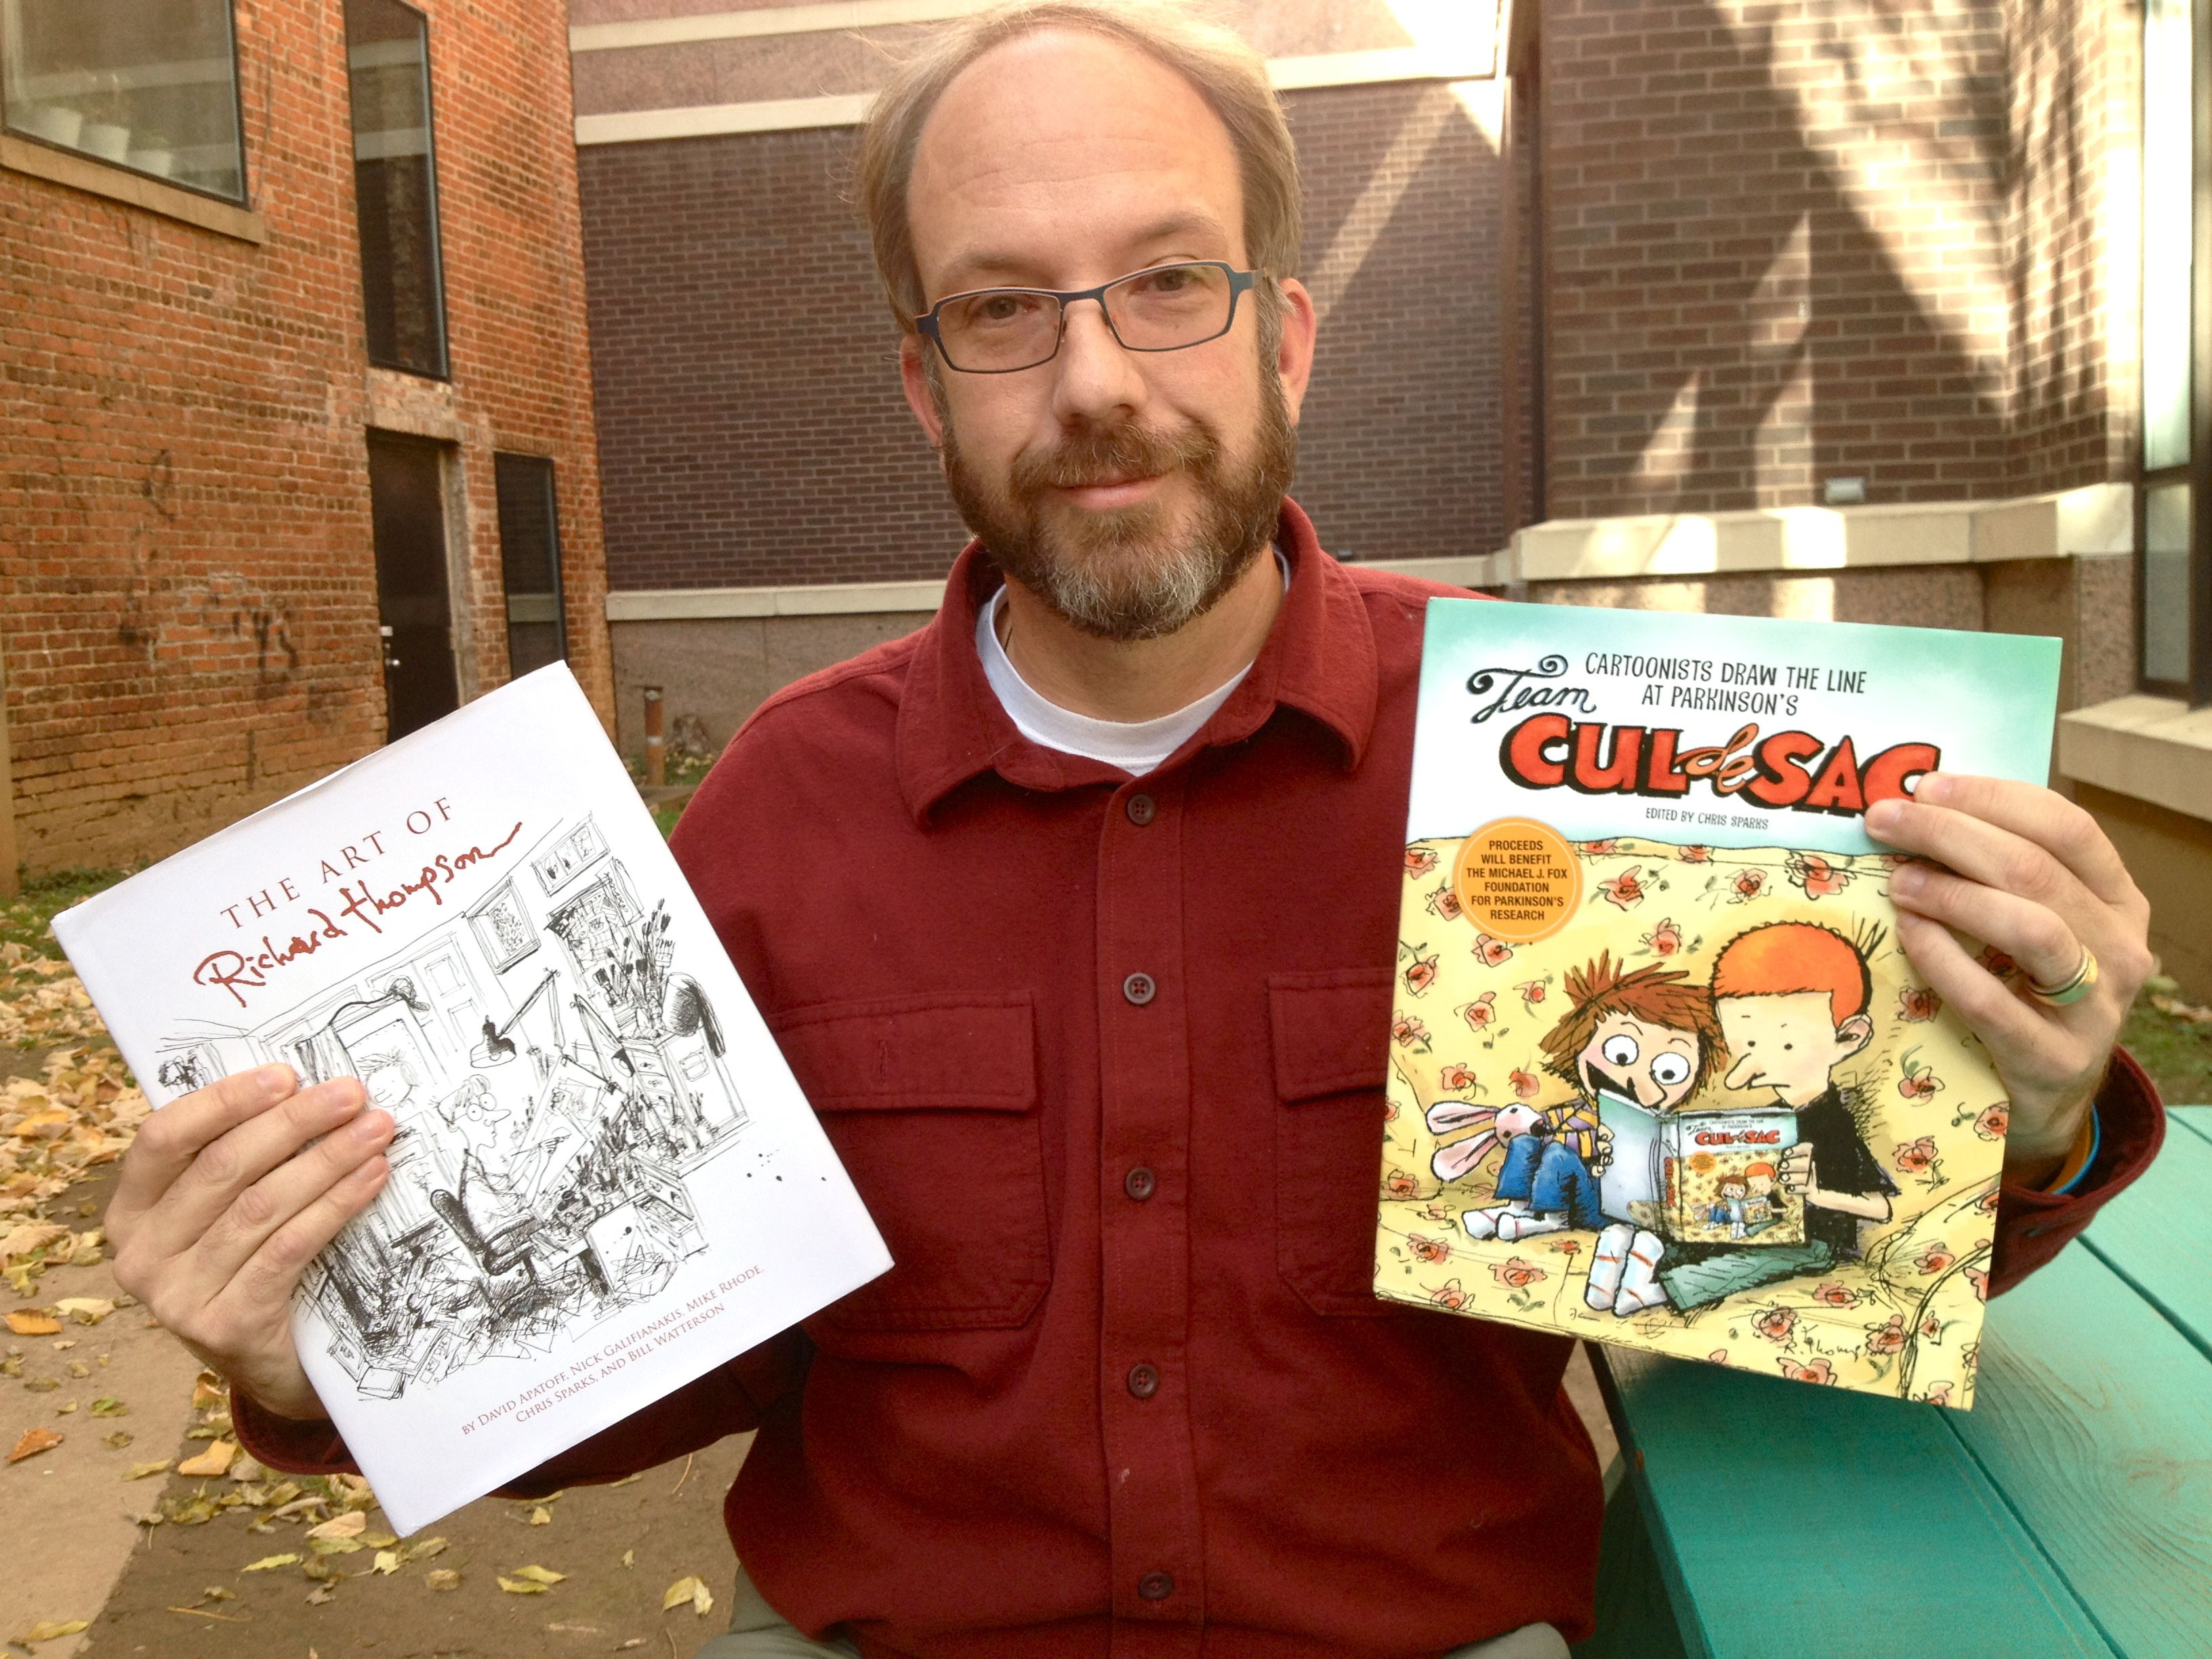 From fan to humanitarian: How Asheville web designer contributed to book honoring master illustrator/cartoonist